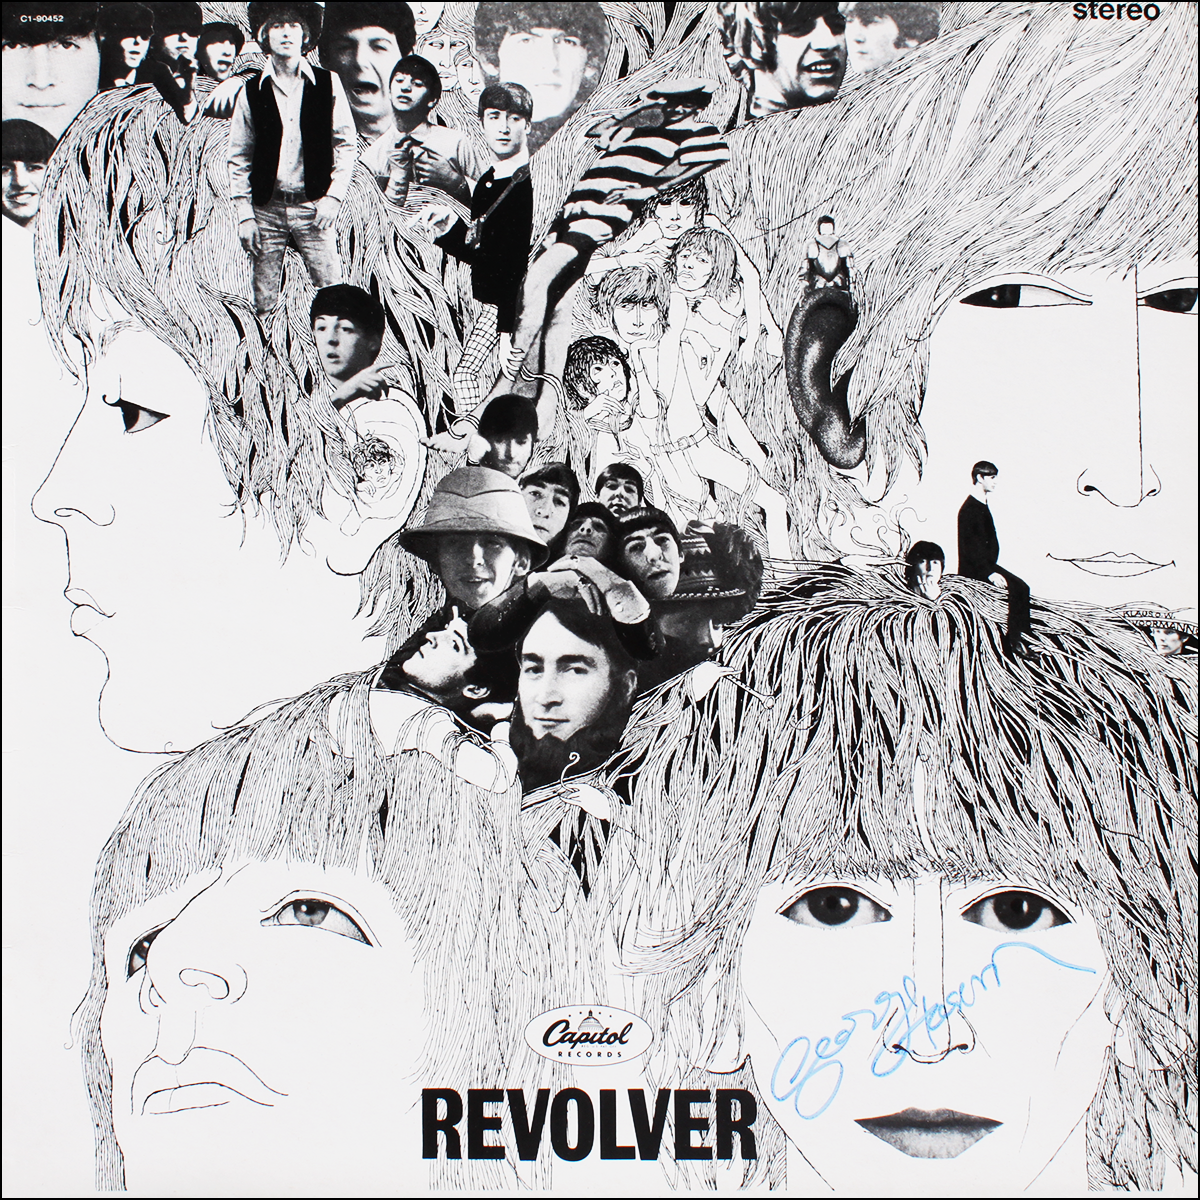 LP - Beatles - George Harrison - Revolver